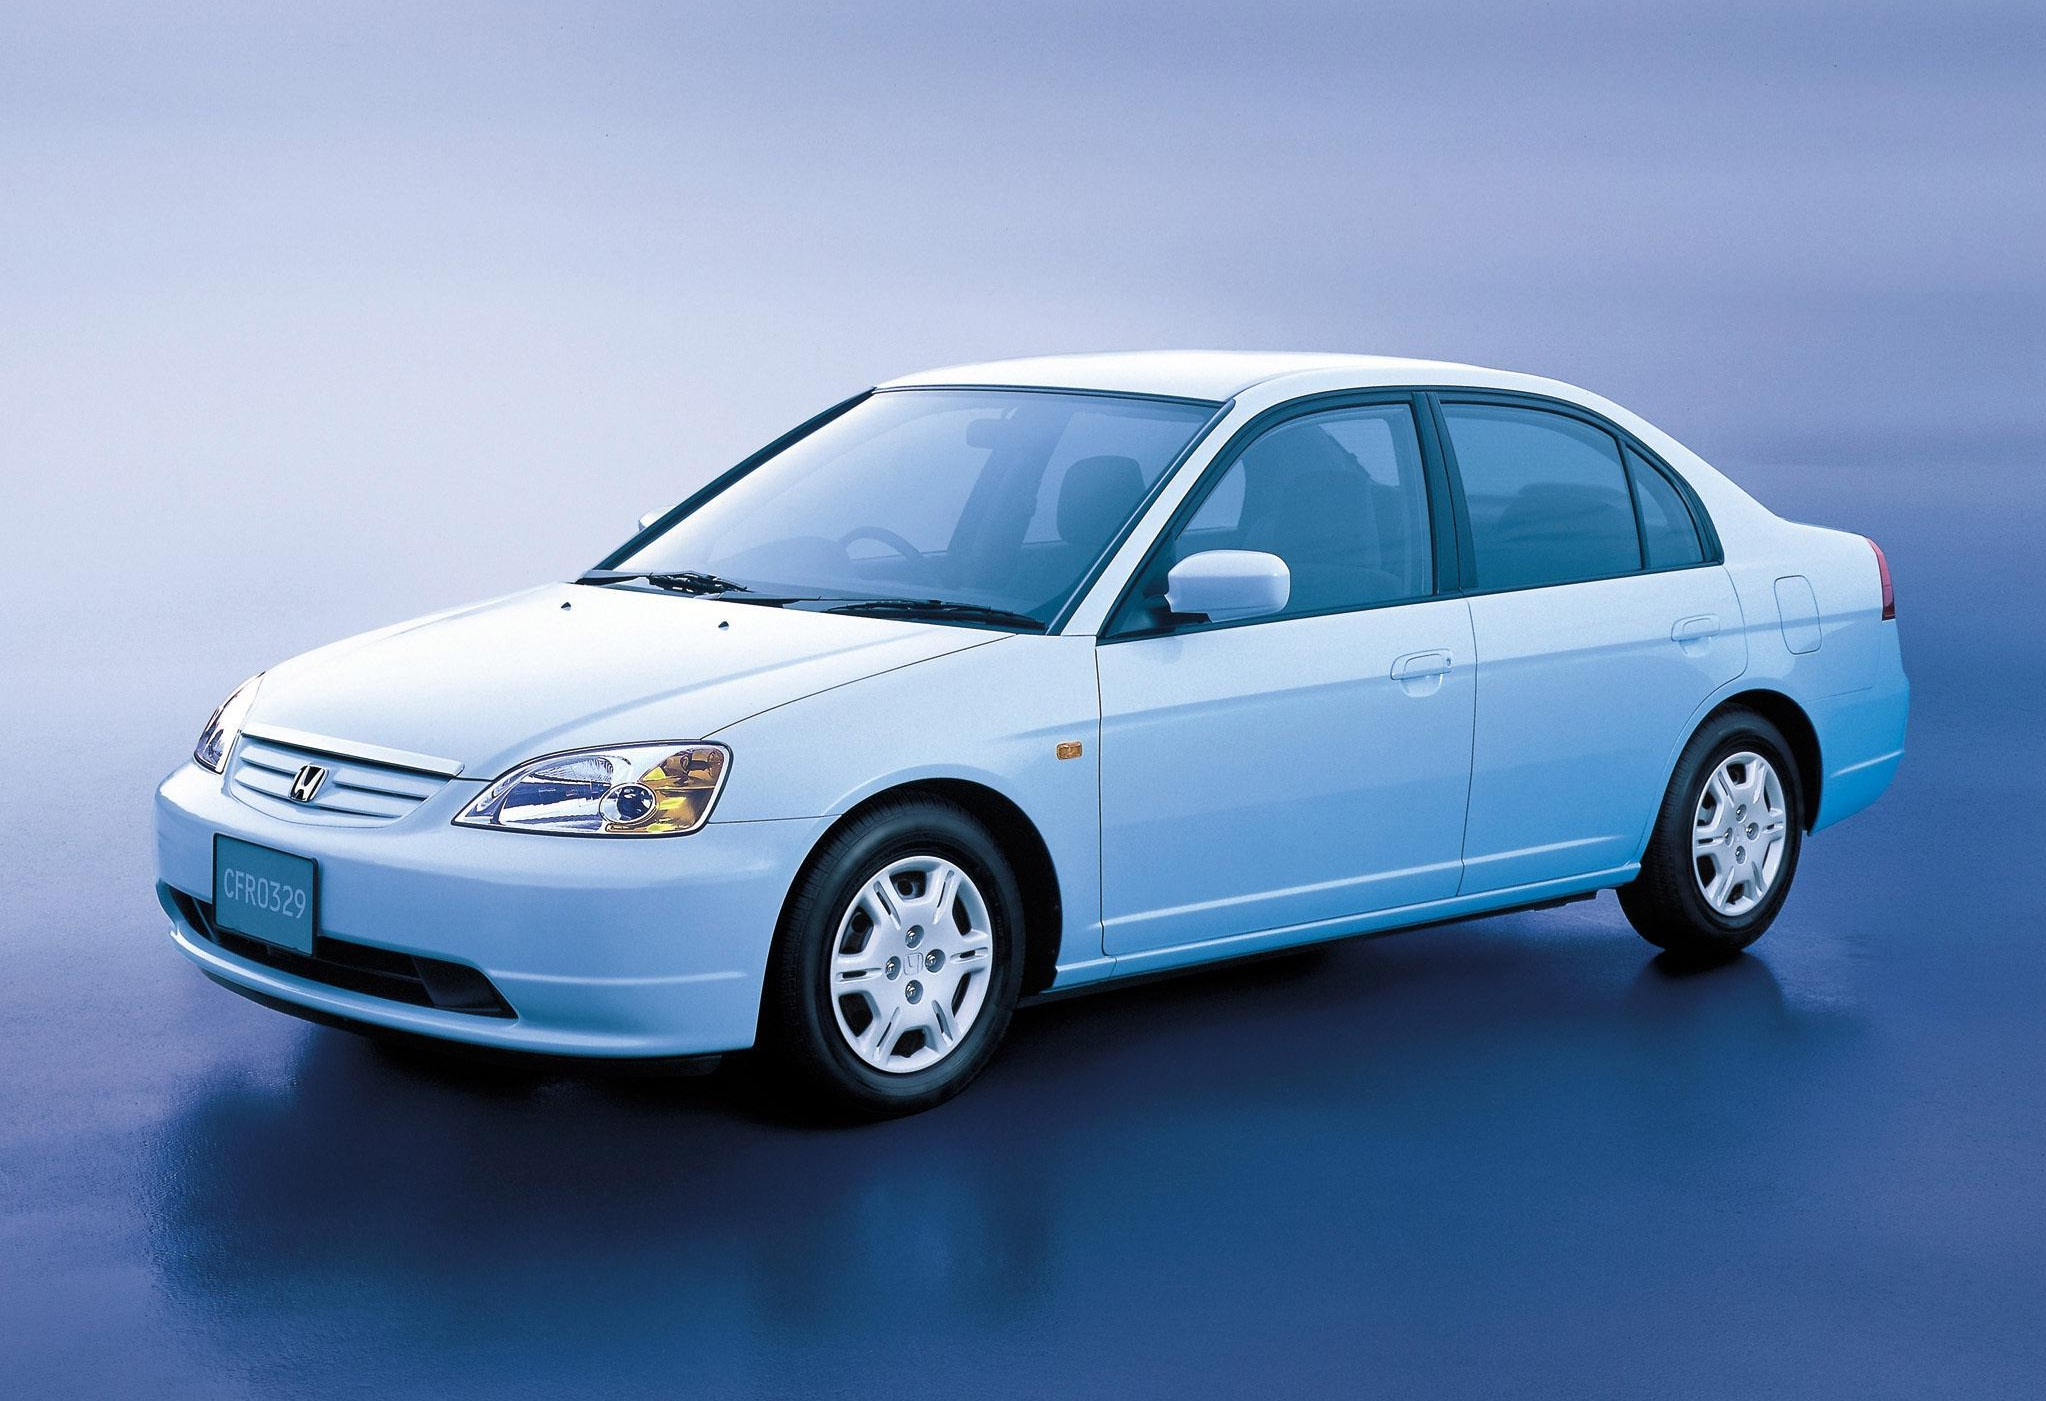 Honda Civic Ferio Specification Cars For Sale Global Auto Traders 2005 Fuel Filter